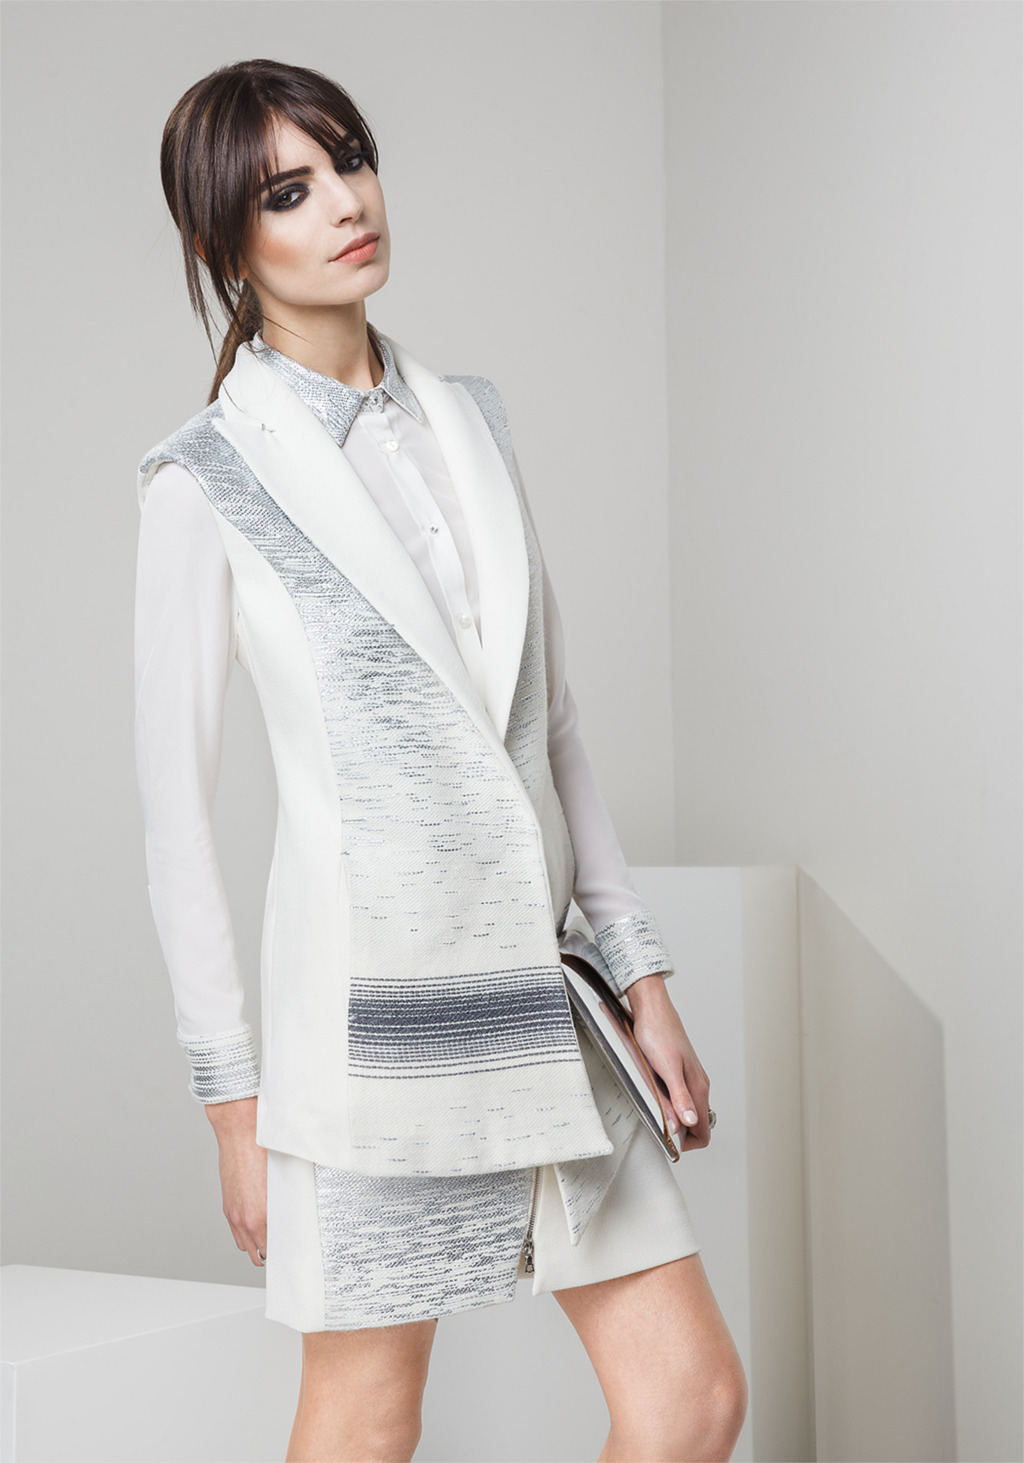 White wool crepe and jacquard vest - white wool crepe and jacquard asymmetric skirt